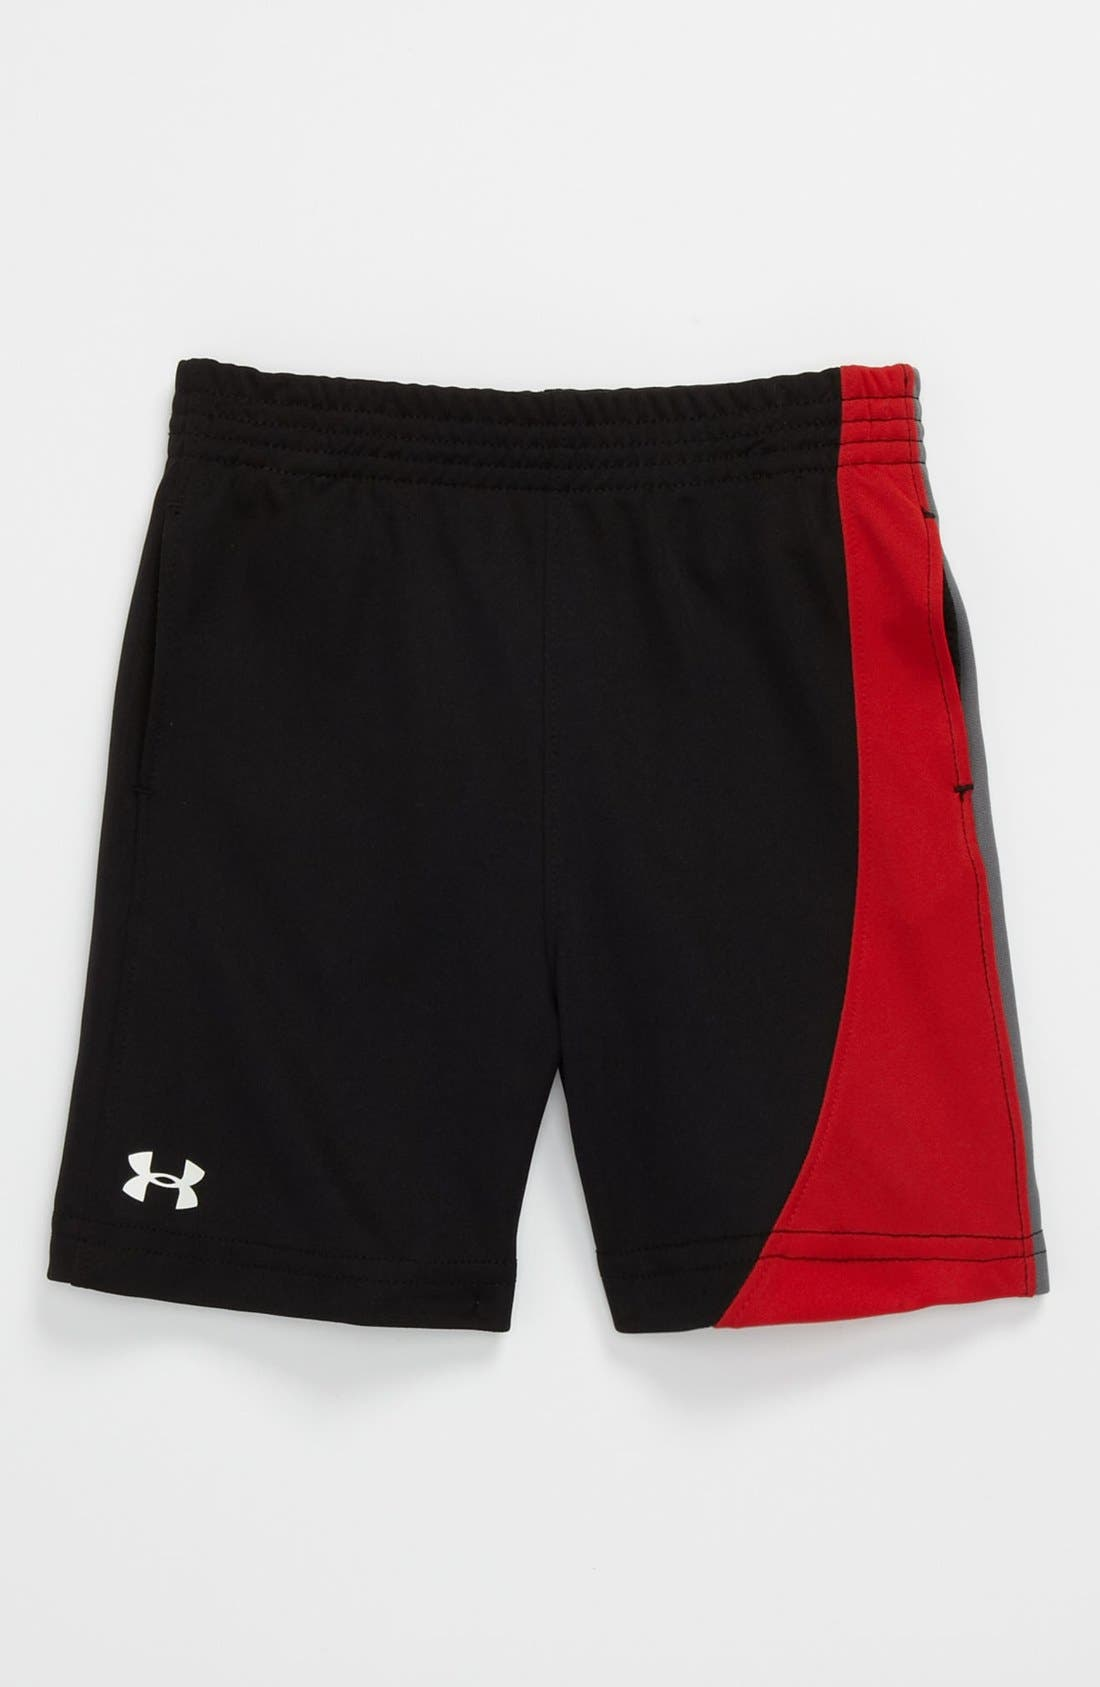 Alternate Image 1 Selected - Under Armour 'Flip' Shorts (Toddler)